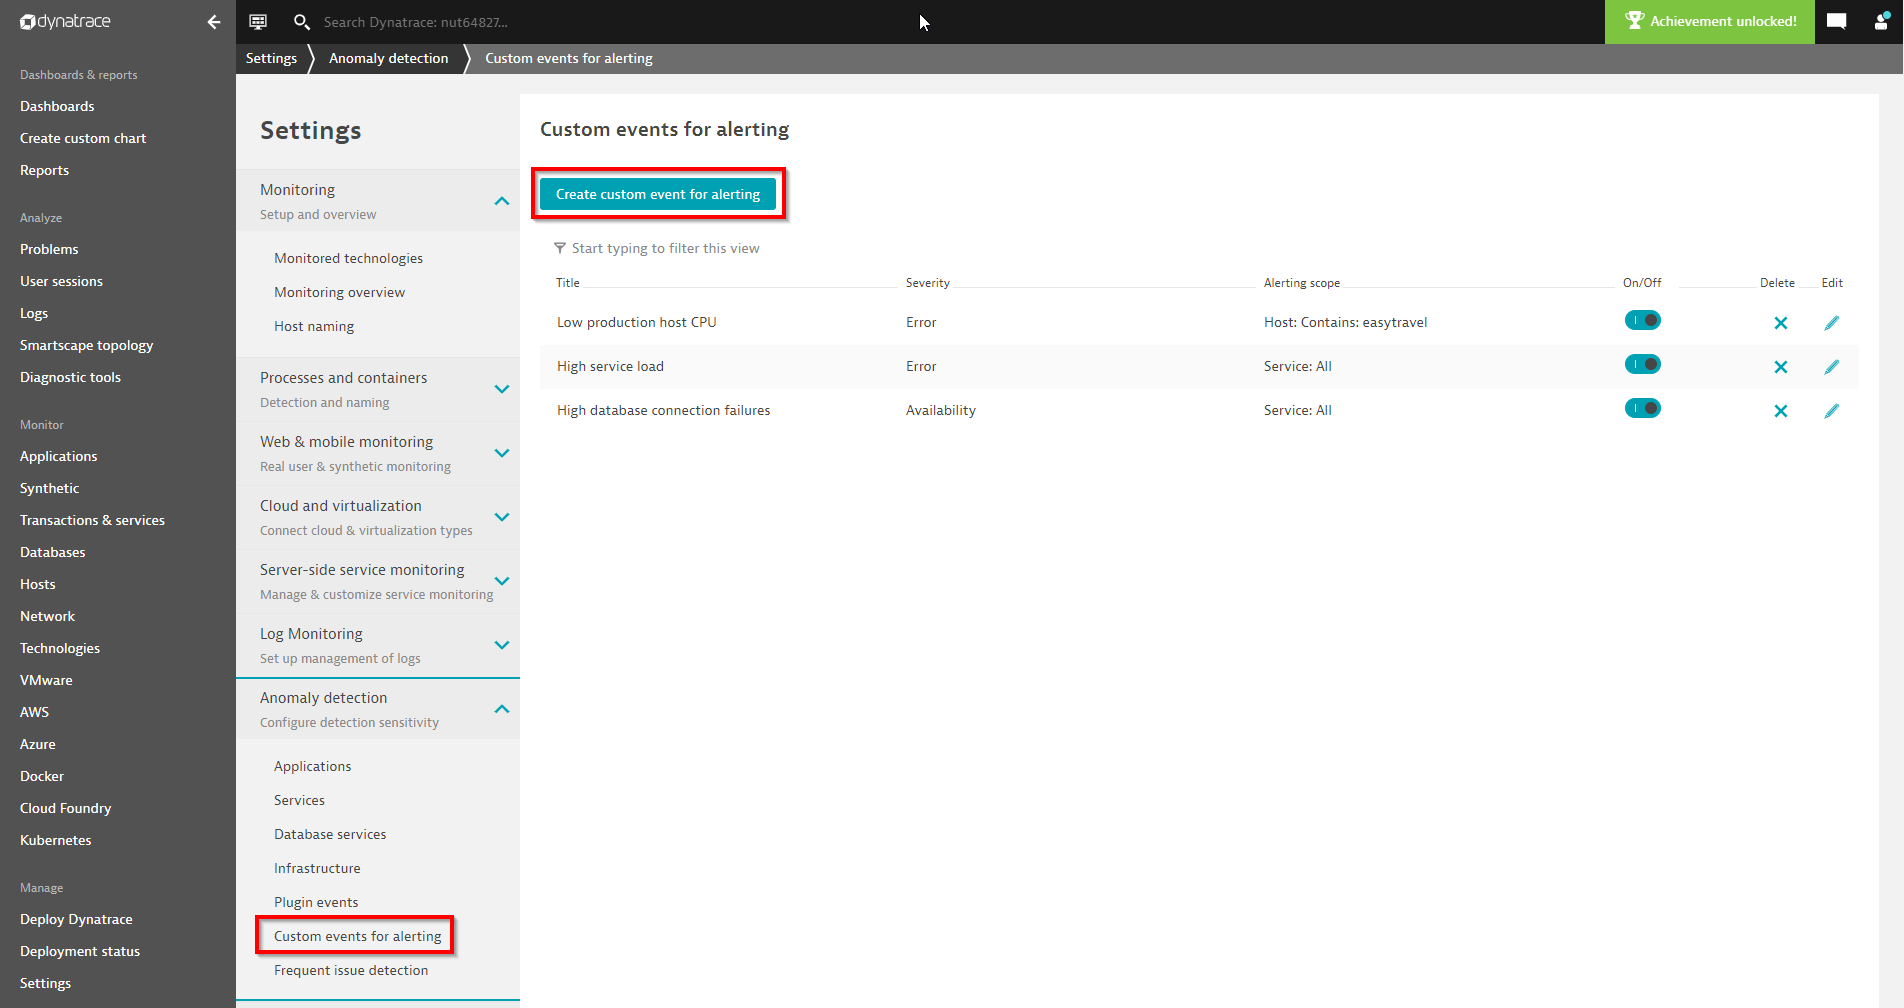 Where to define a custom event for alerting